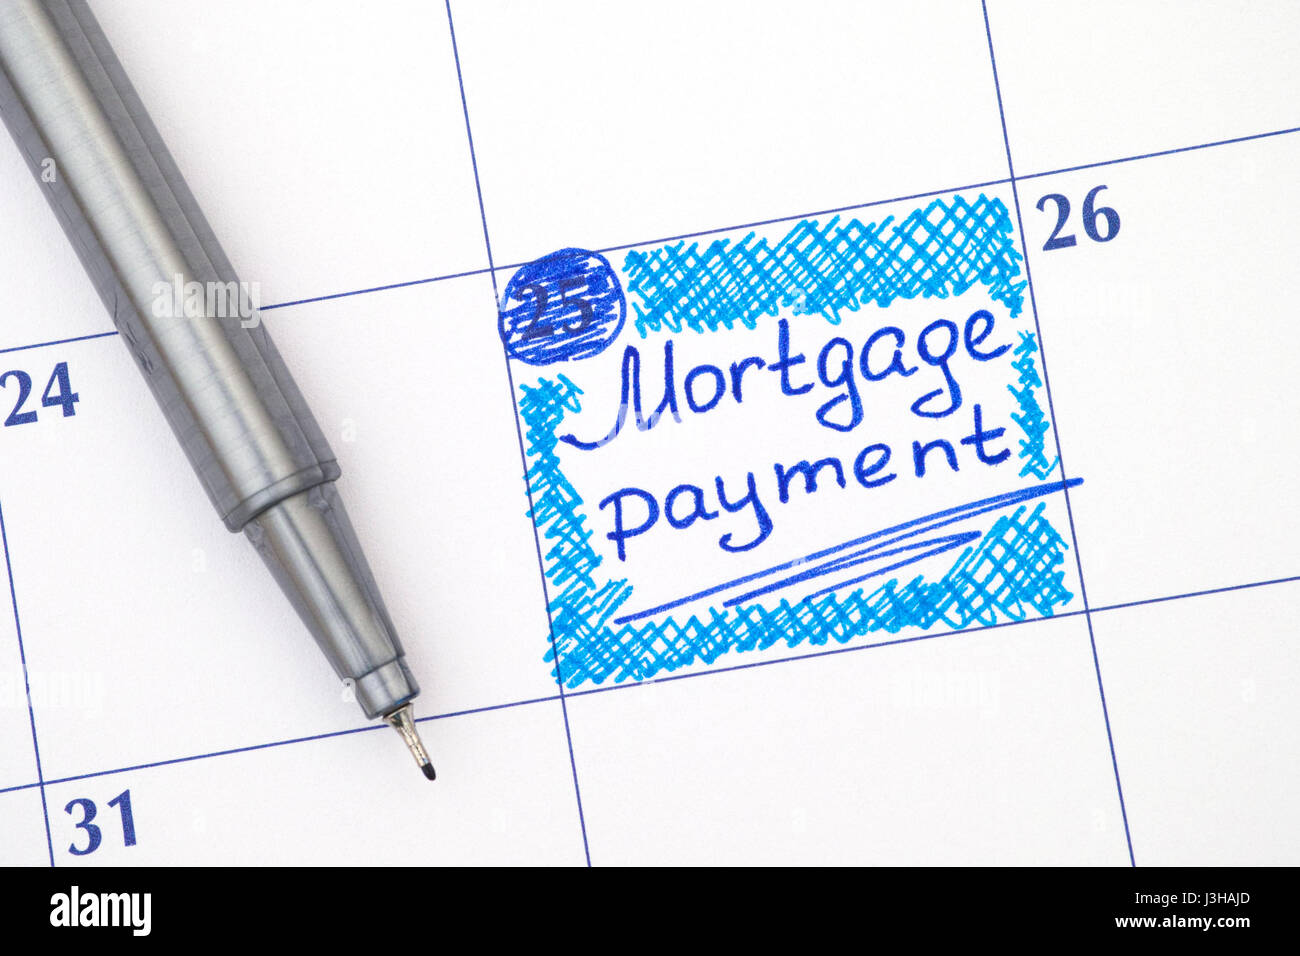 Reminder Mortgage Payment in calendar with blue pen. Stock Photo